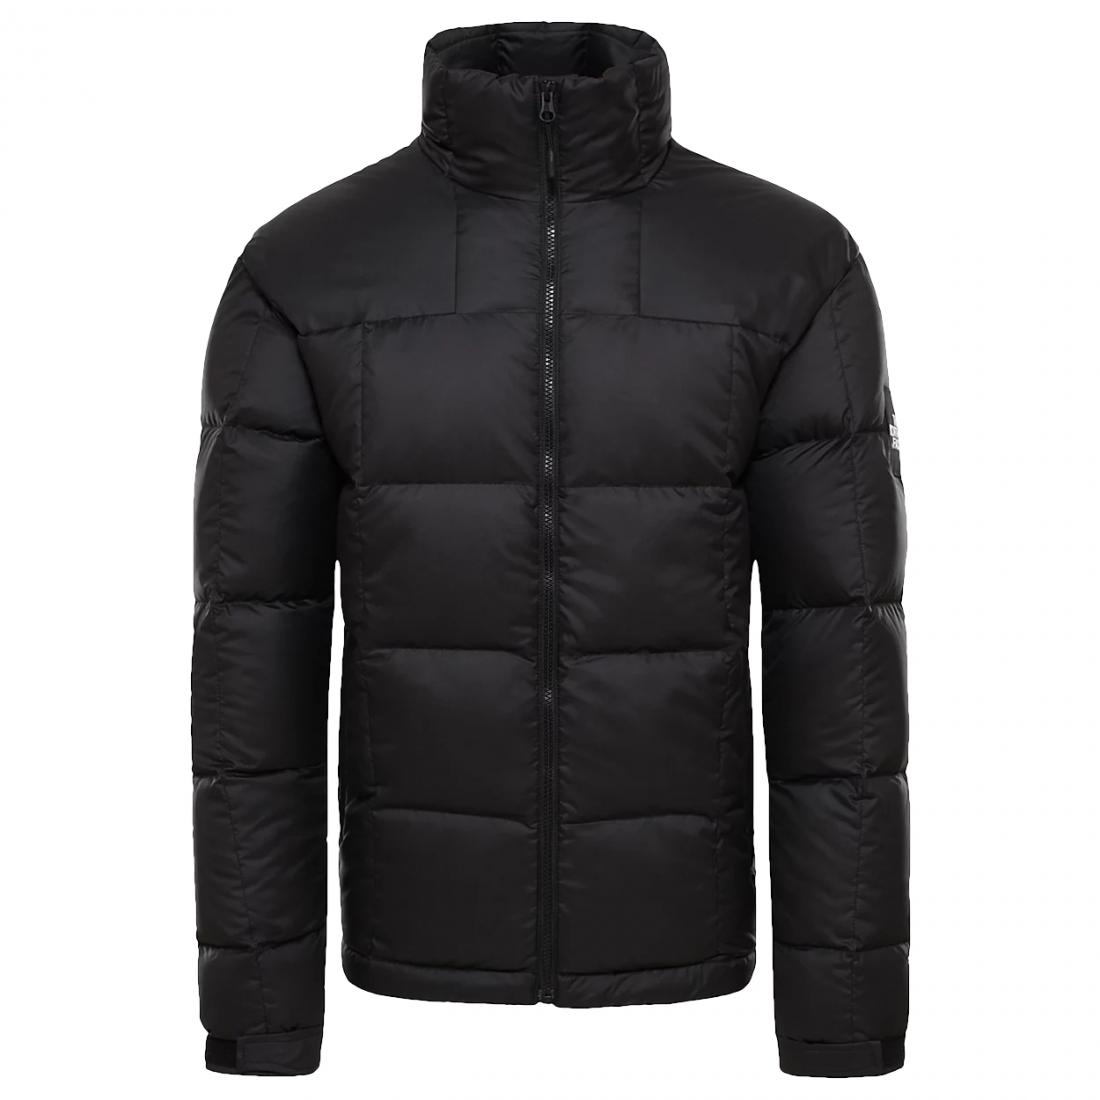 Куртка M LHOTSE JACKET TNF Черная